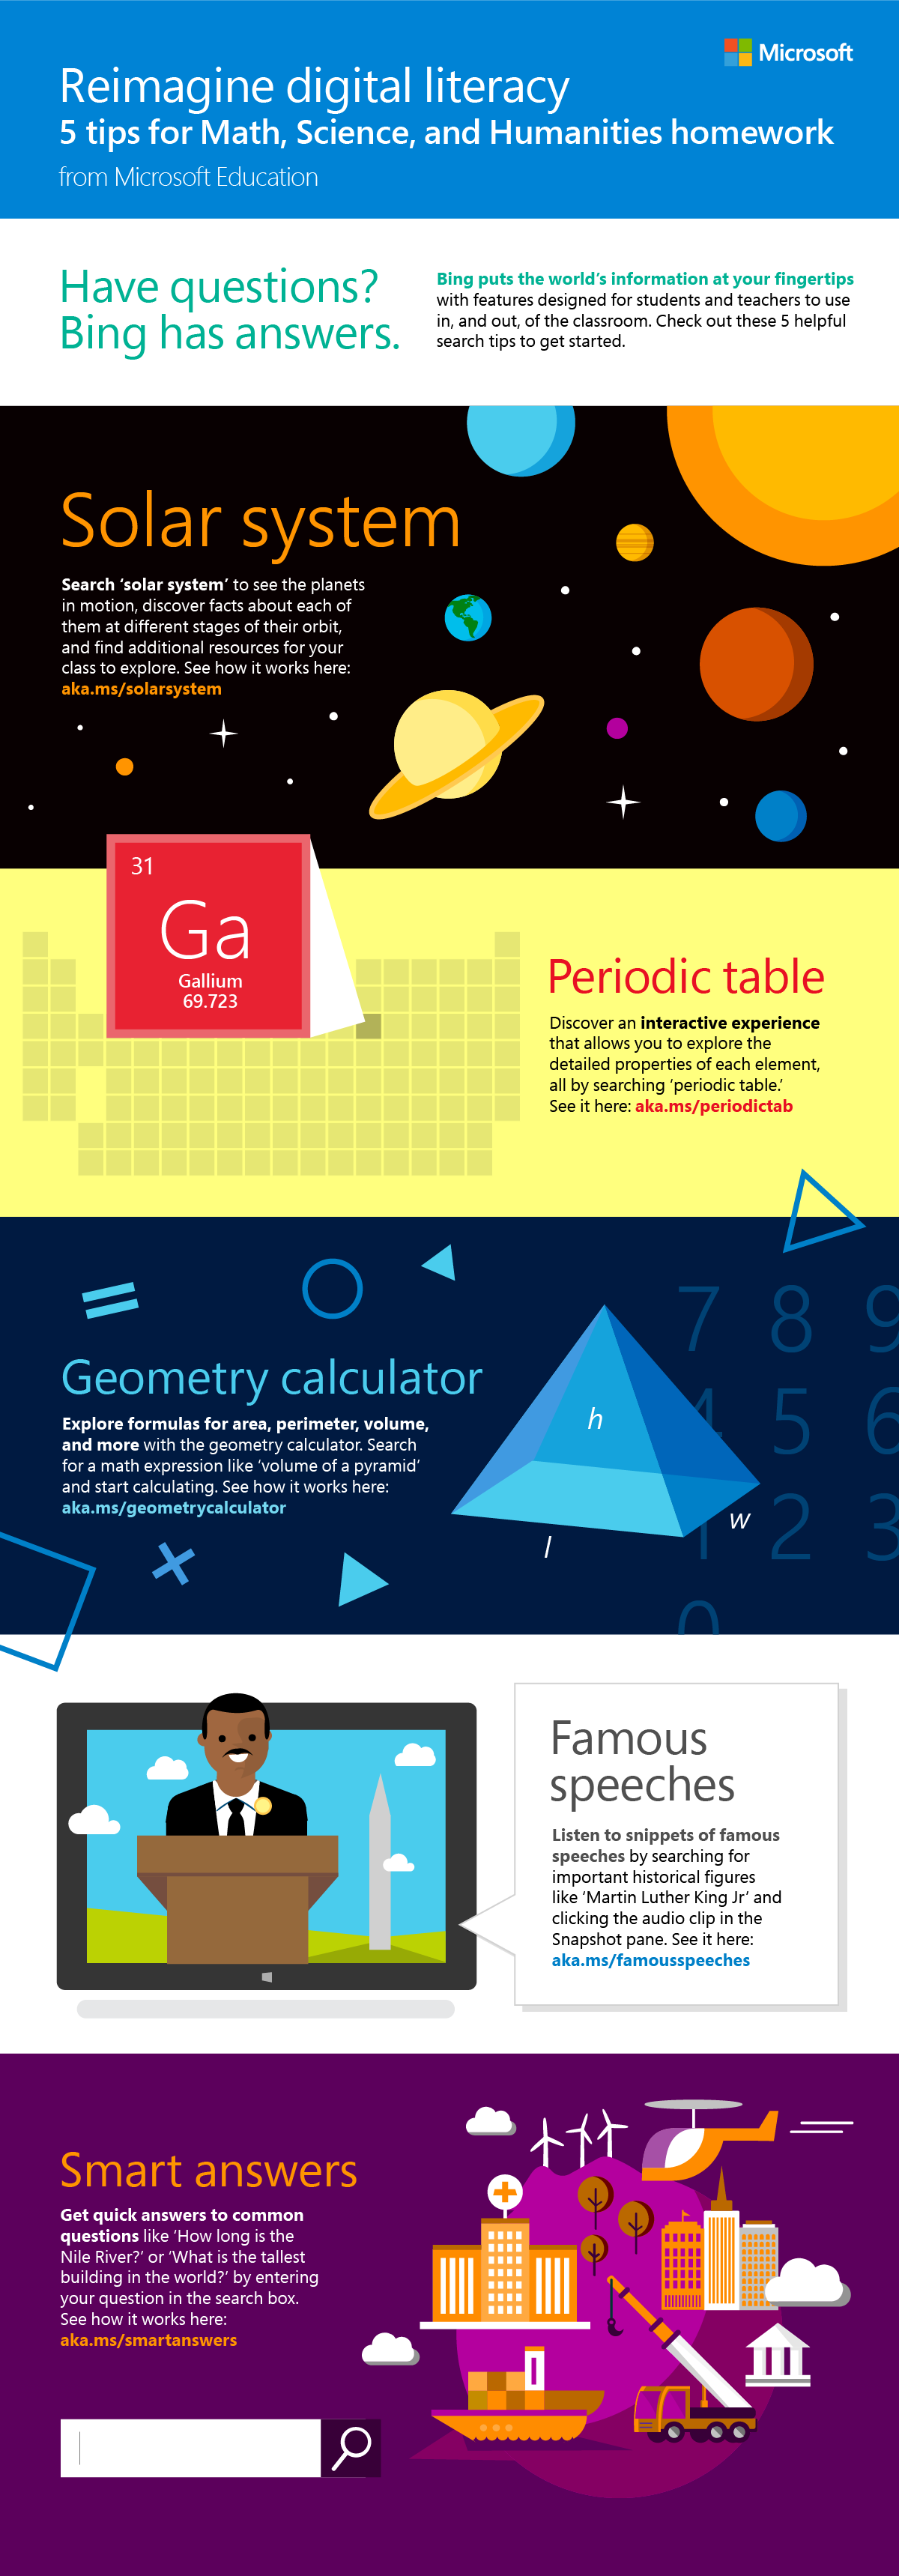 From Planets To The Periodic Table, Thereu0027s Lots For Ss To Explore Using  Bing And